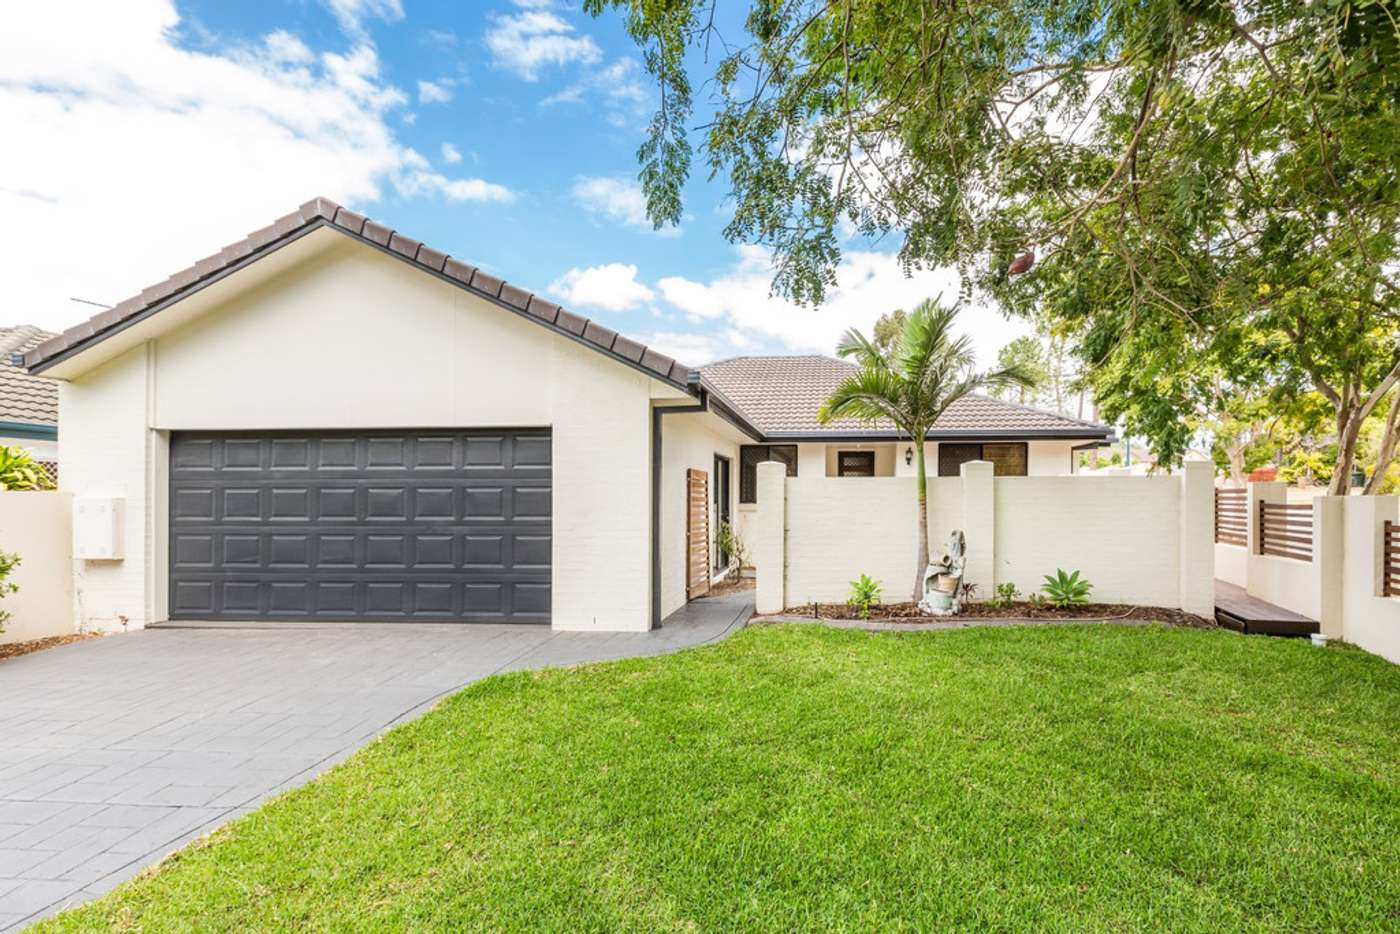 Main view of Homely house listing, 3 Seabrook Crescent, Forest Lake QLD 4078